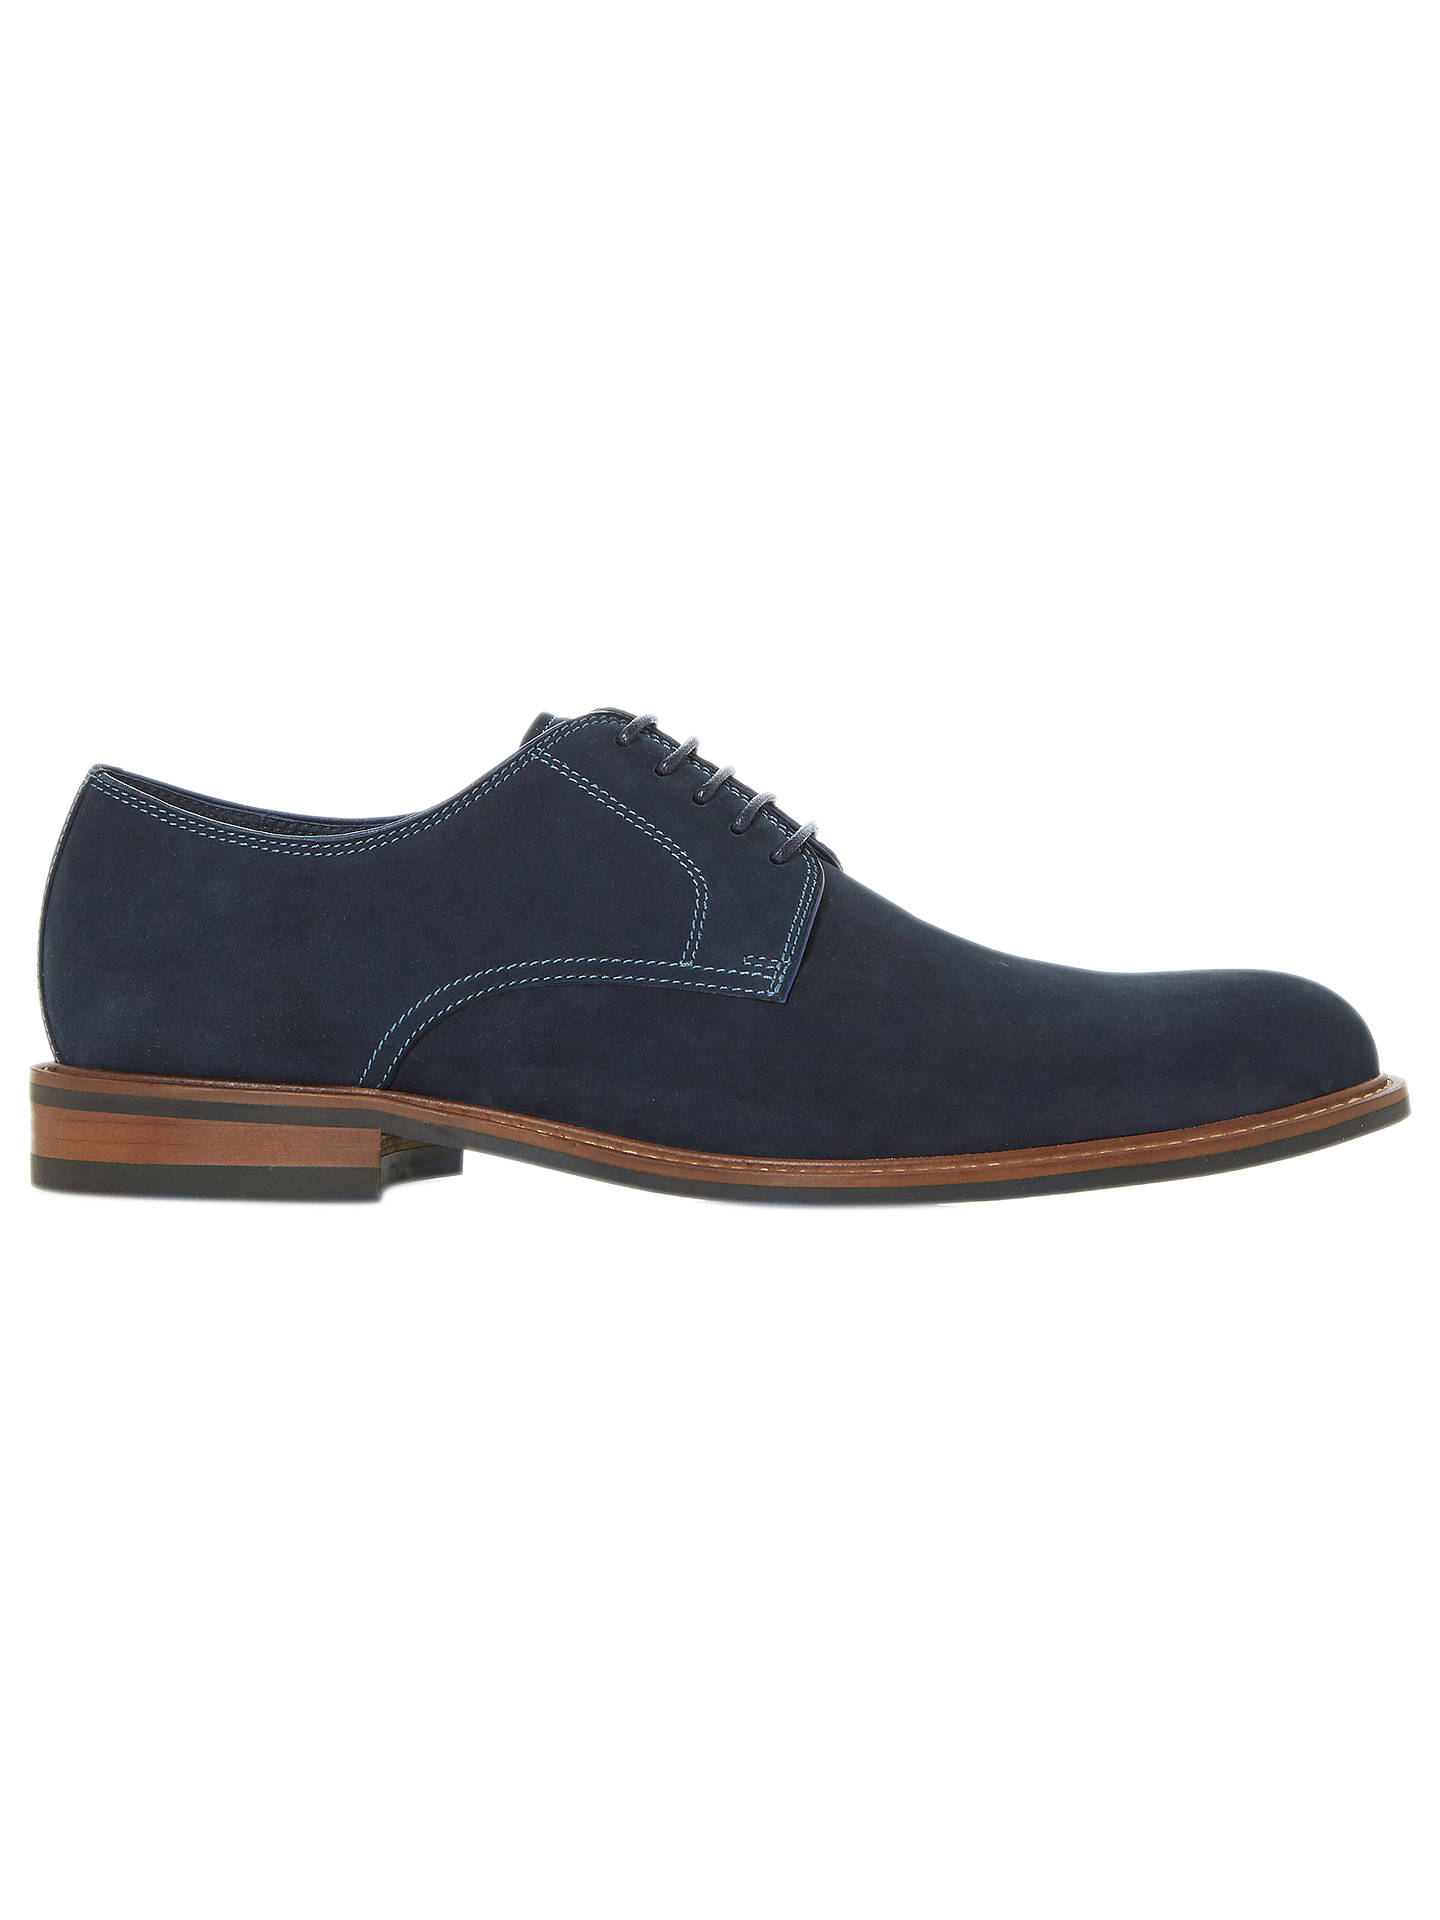 08a4120401e083 Dune Beethoven Suede Derby Shoes at John Lewis   Partners